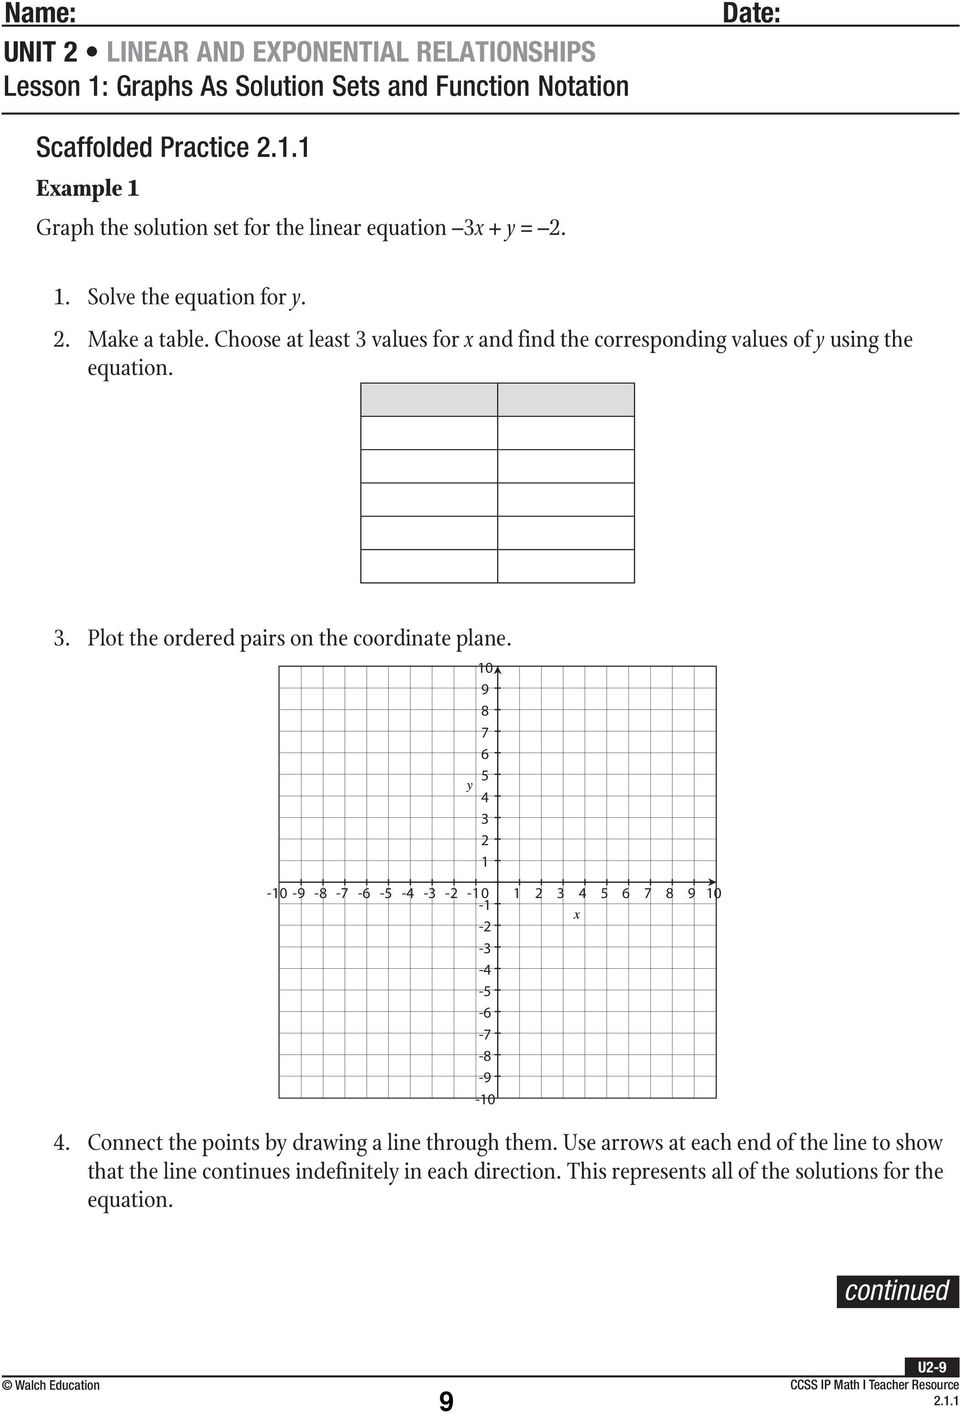 Function notation and operations worksheet answer key